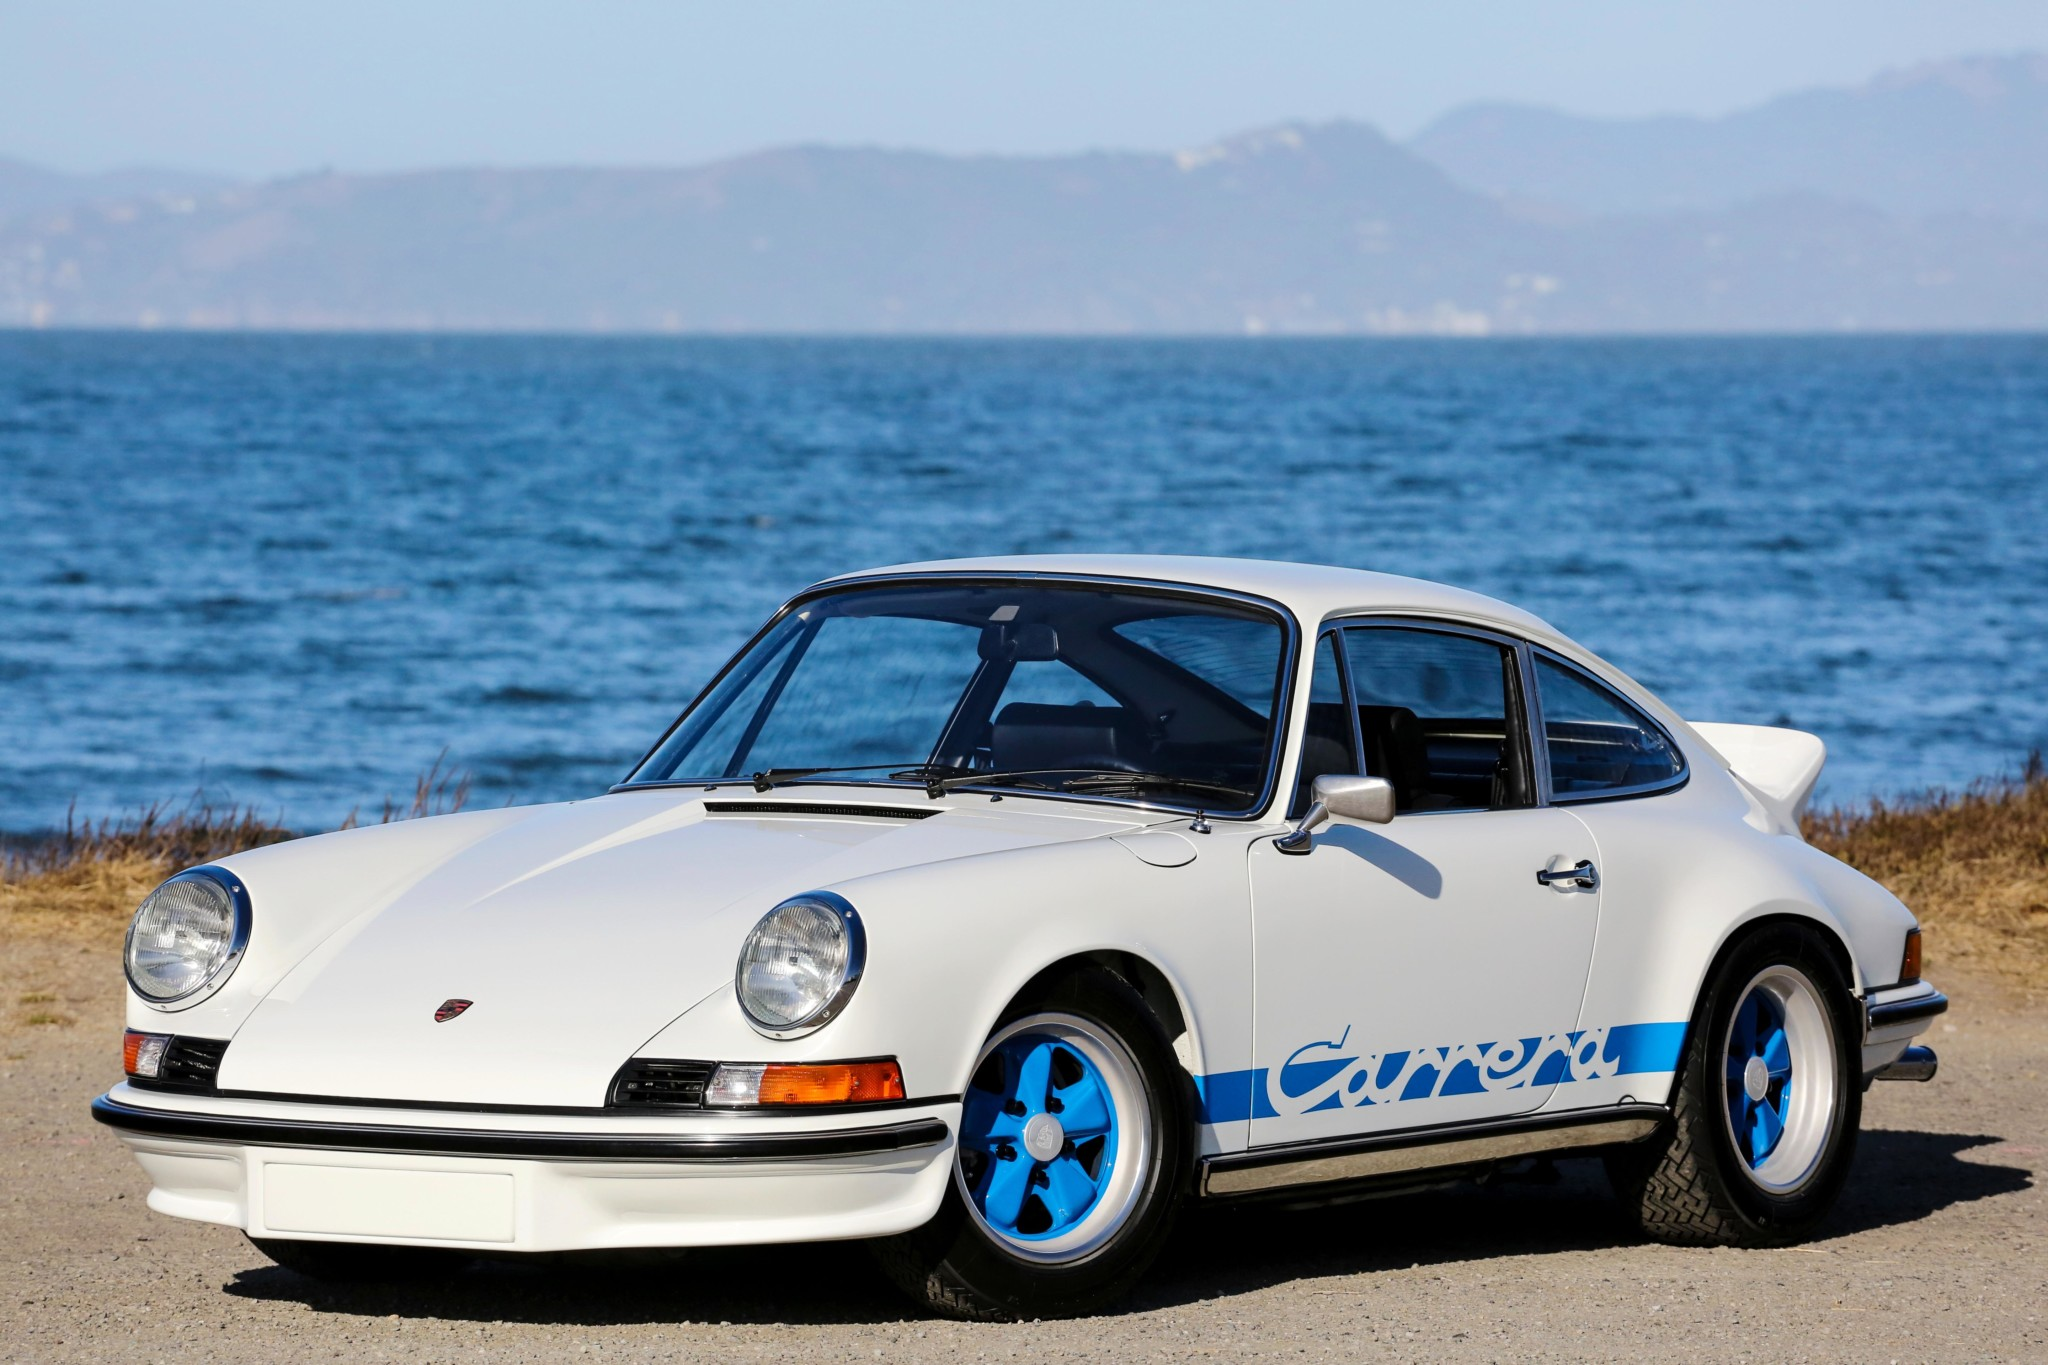 Porsche-911-Carrera-RS-2.7-1973-for-sale-15